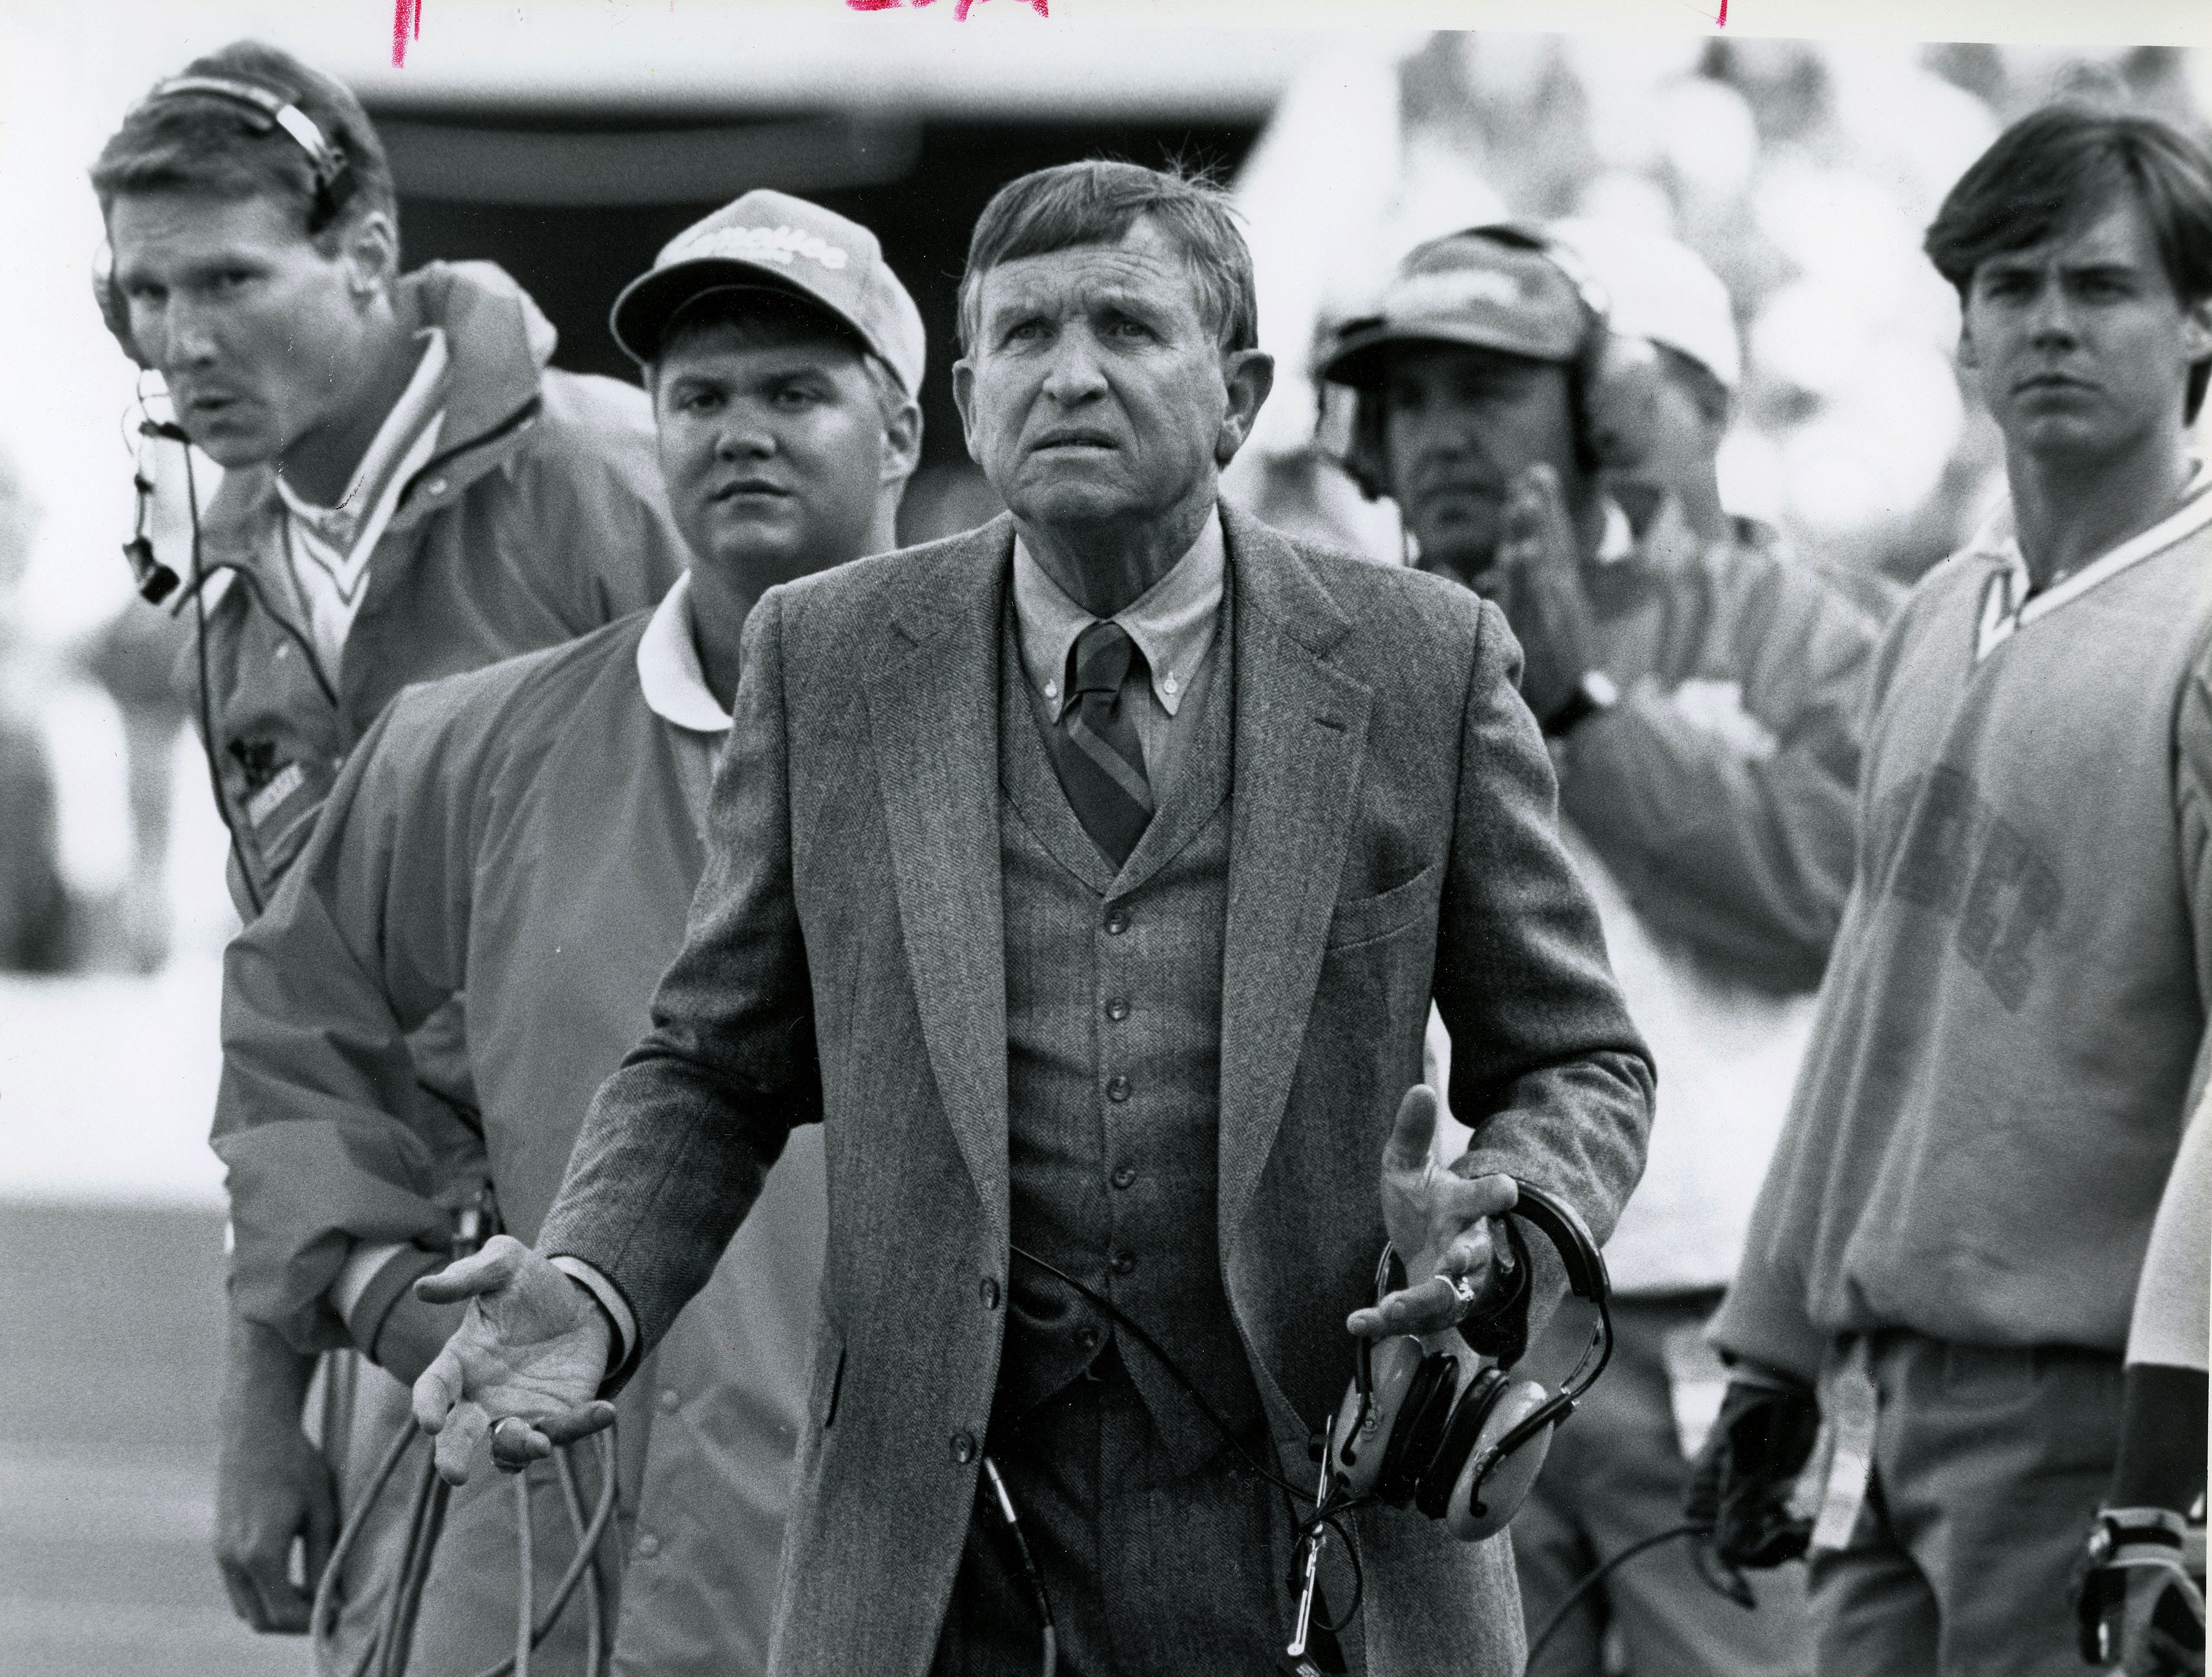 Tennessee head coach Johnny Majors questions a referee call during game Nov. 3, 1991.